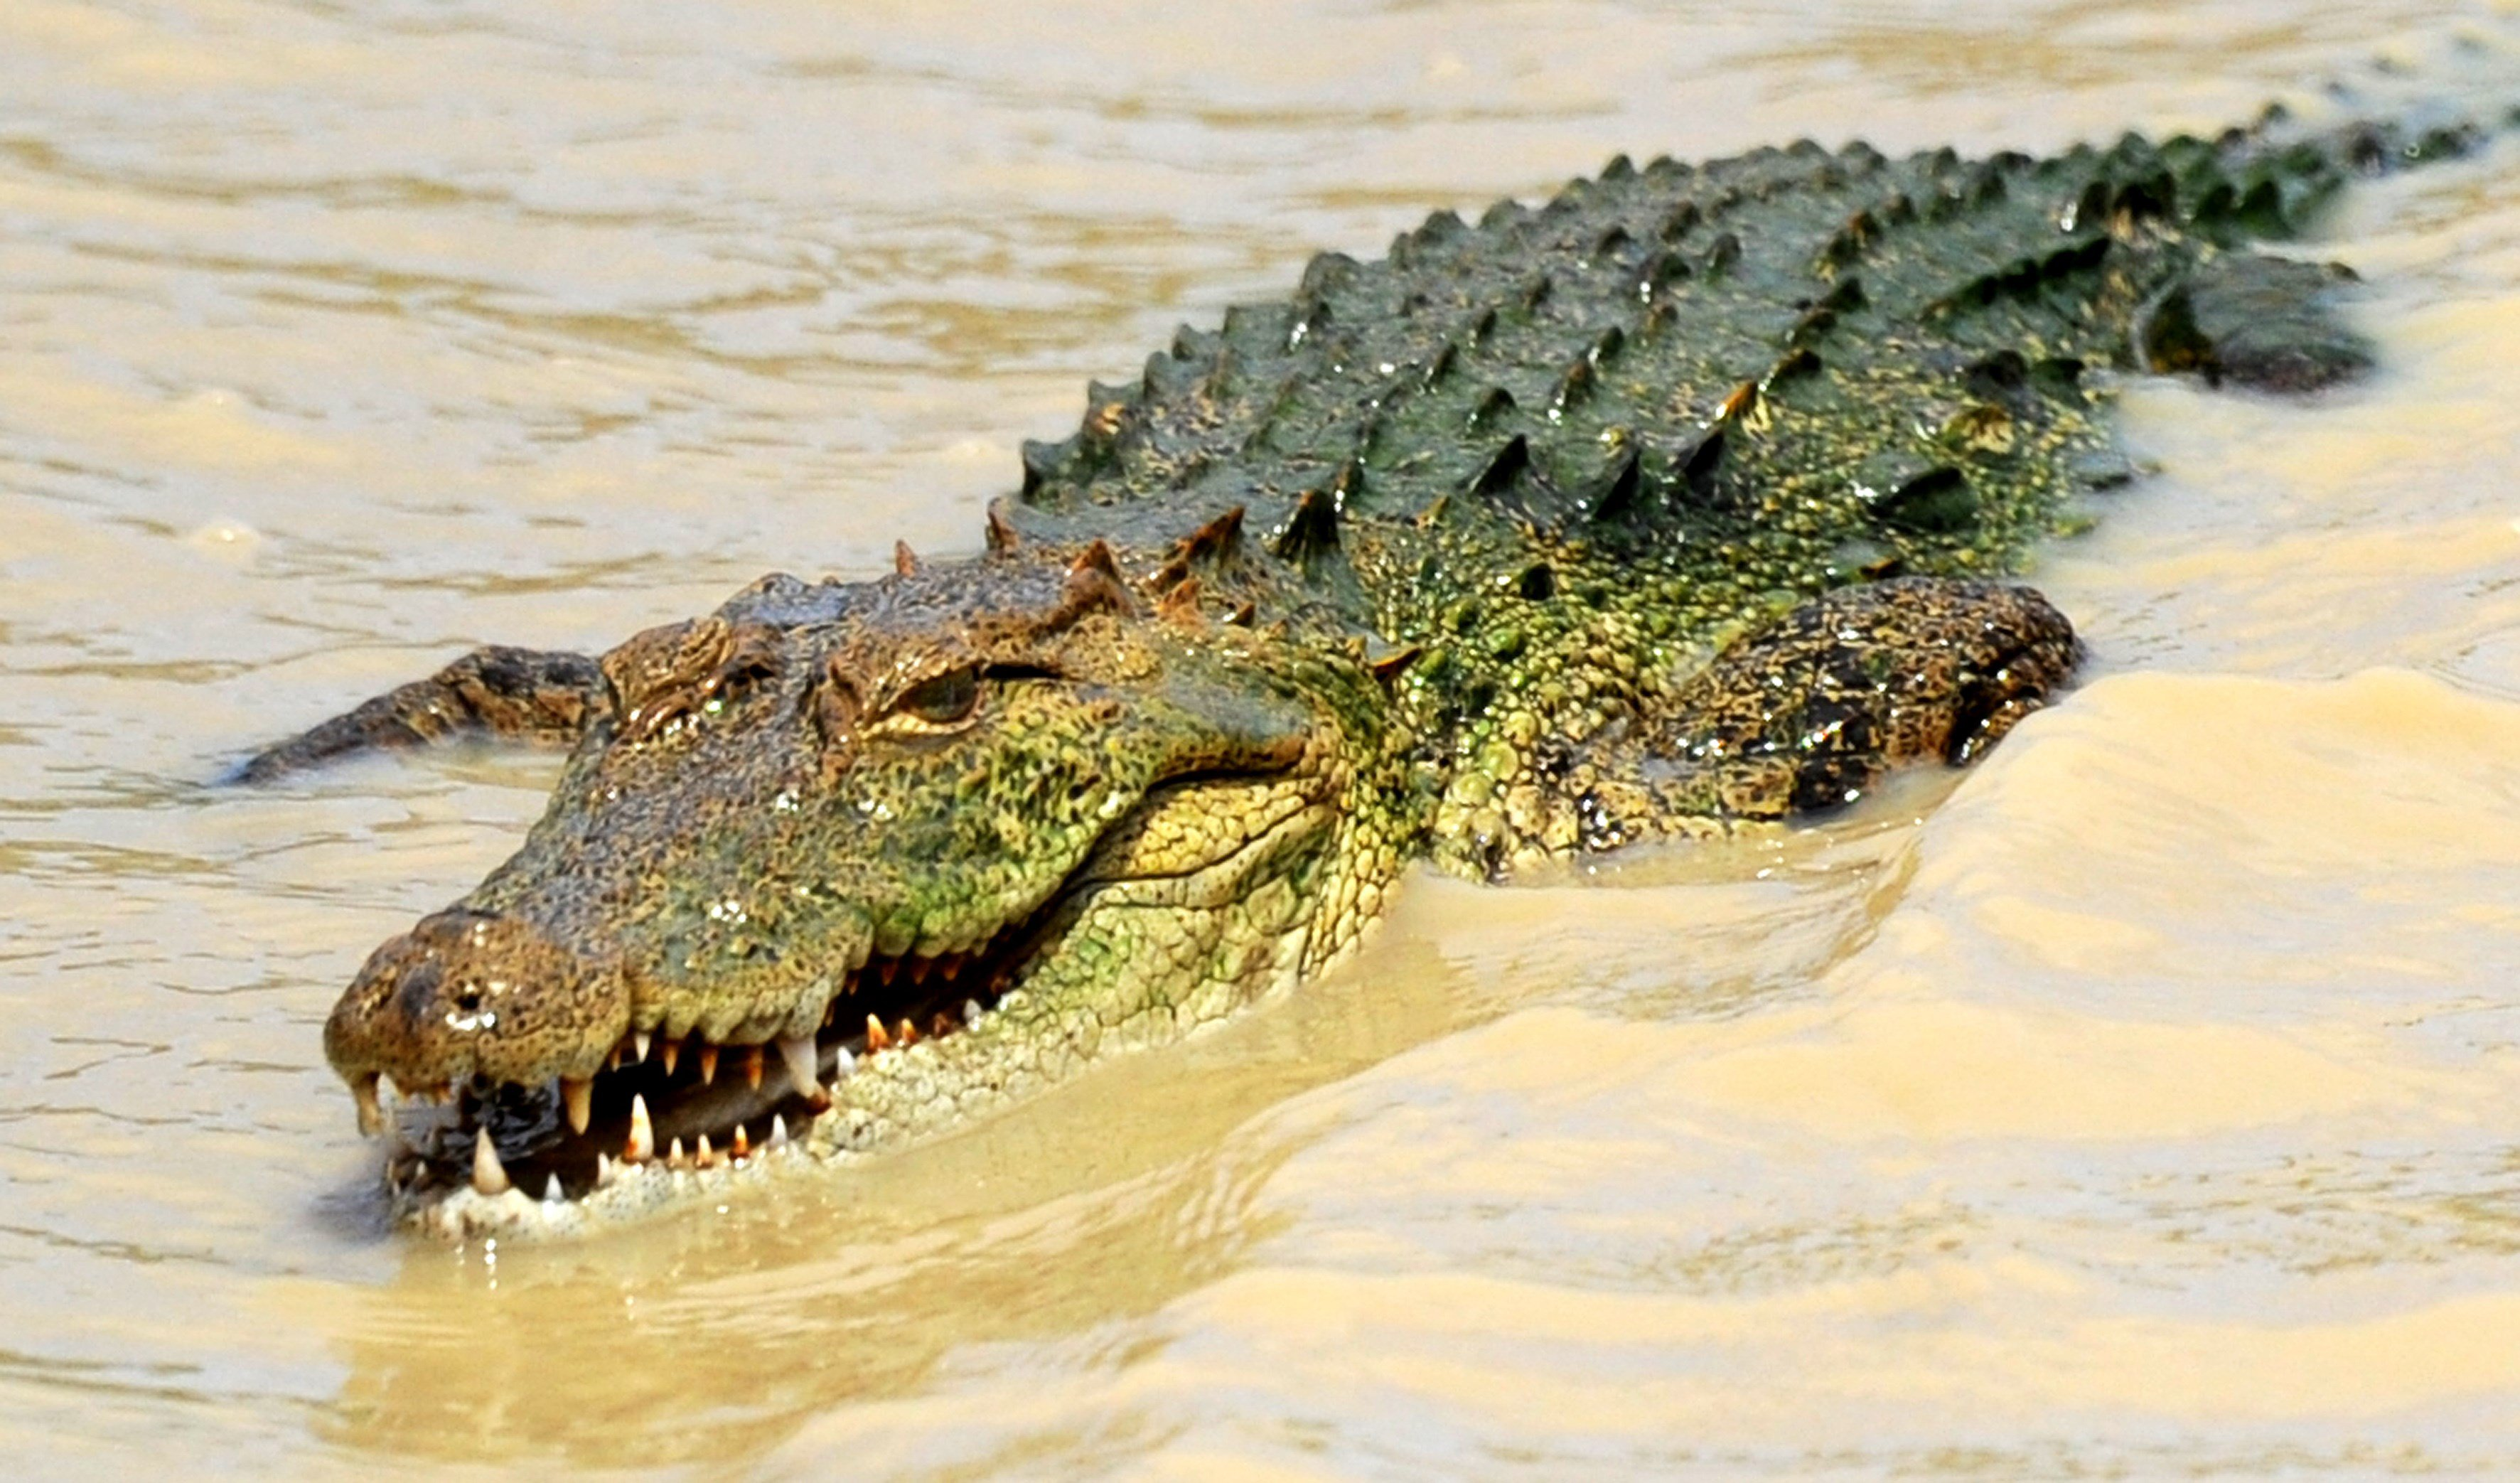 Watch this Crocodile Leap Out of the Water | Time